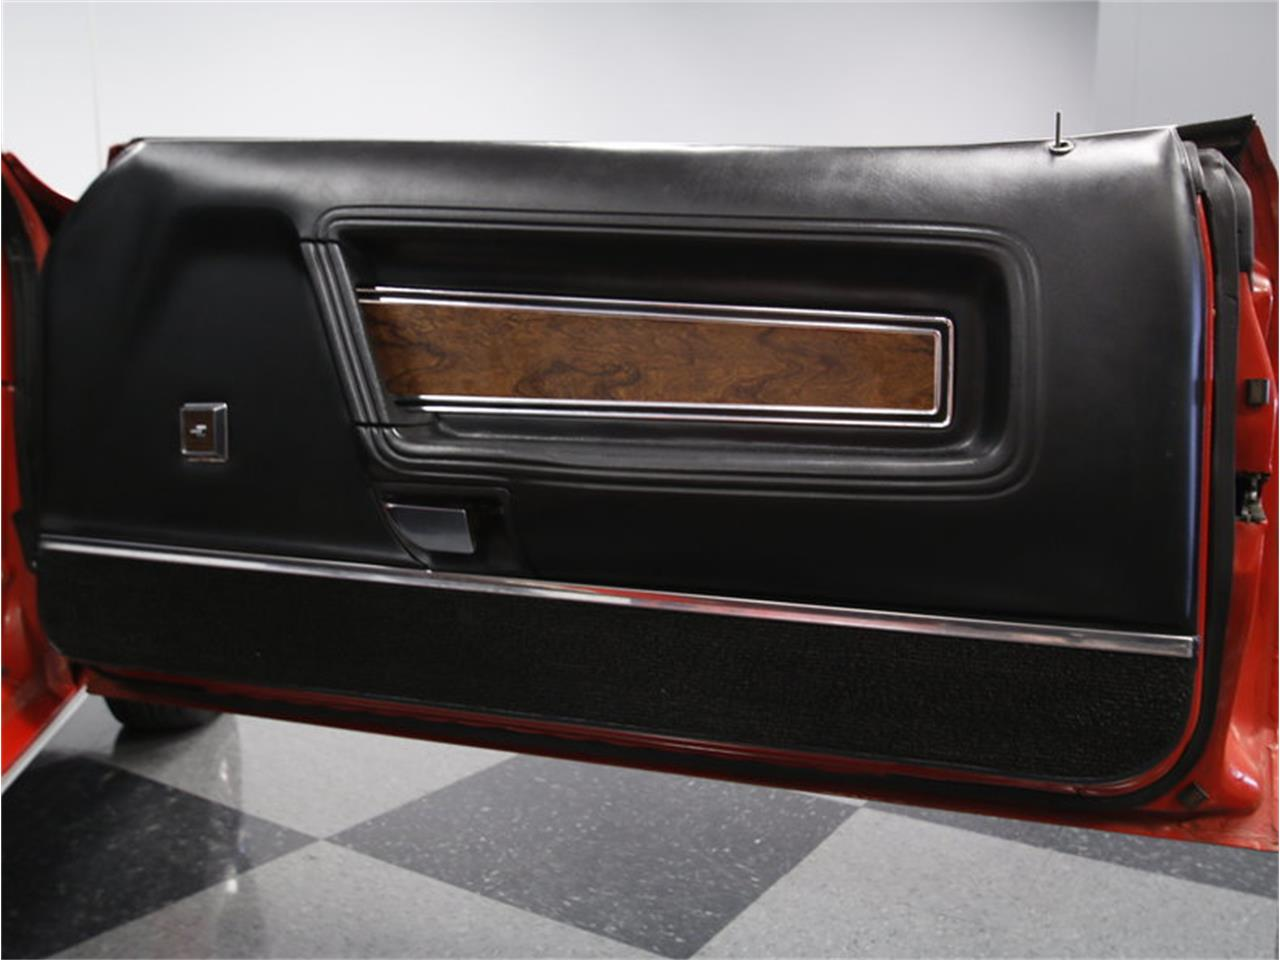 Large Picture of Classic 1973 Ford Mustang 351 Cobra Jet located in North Carolina - $24,995.00 Offered by Streetside Classics - Charlotte - KISW